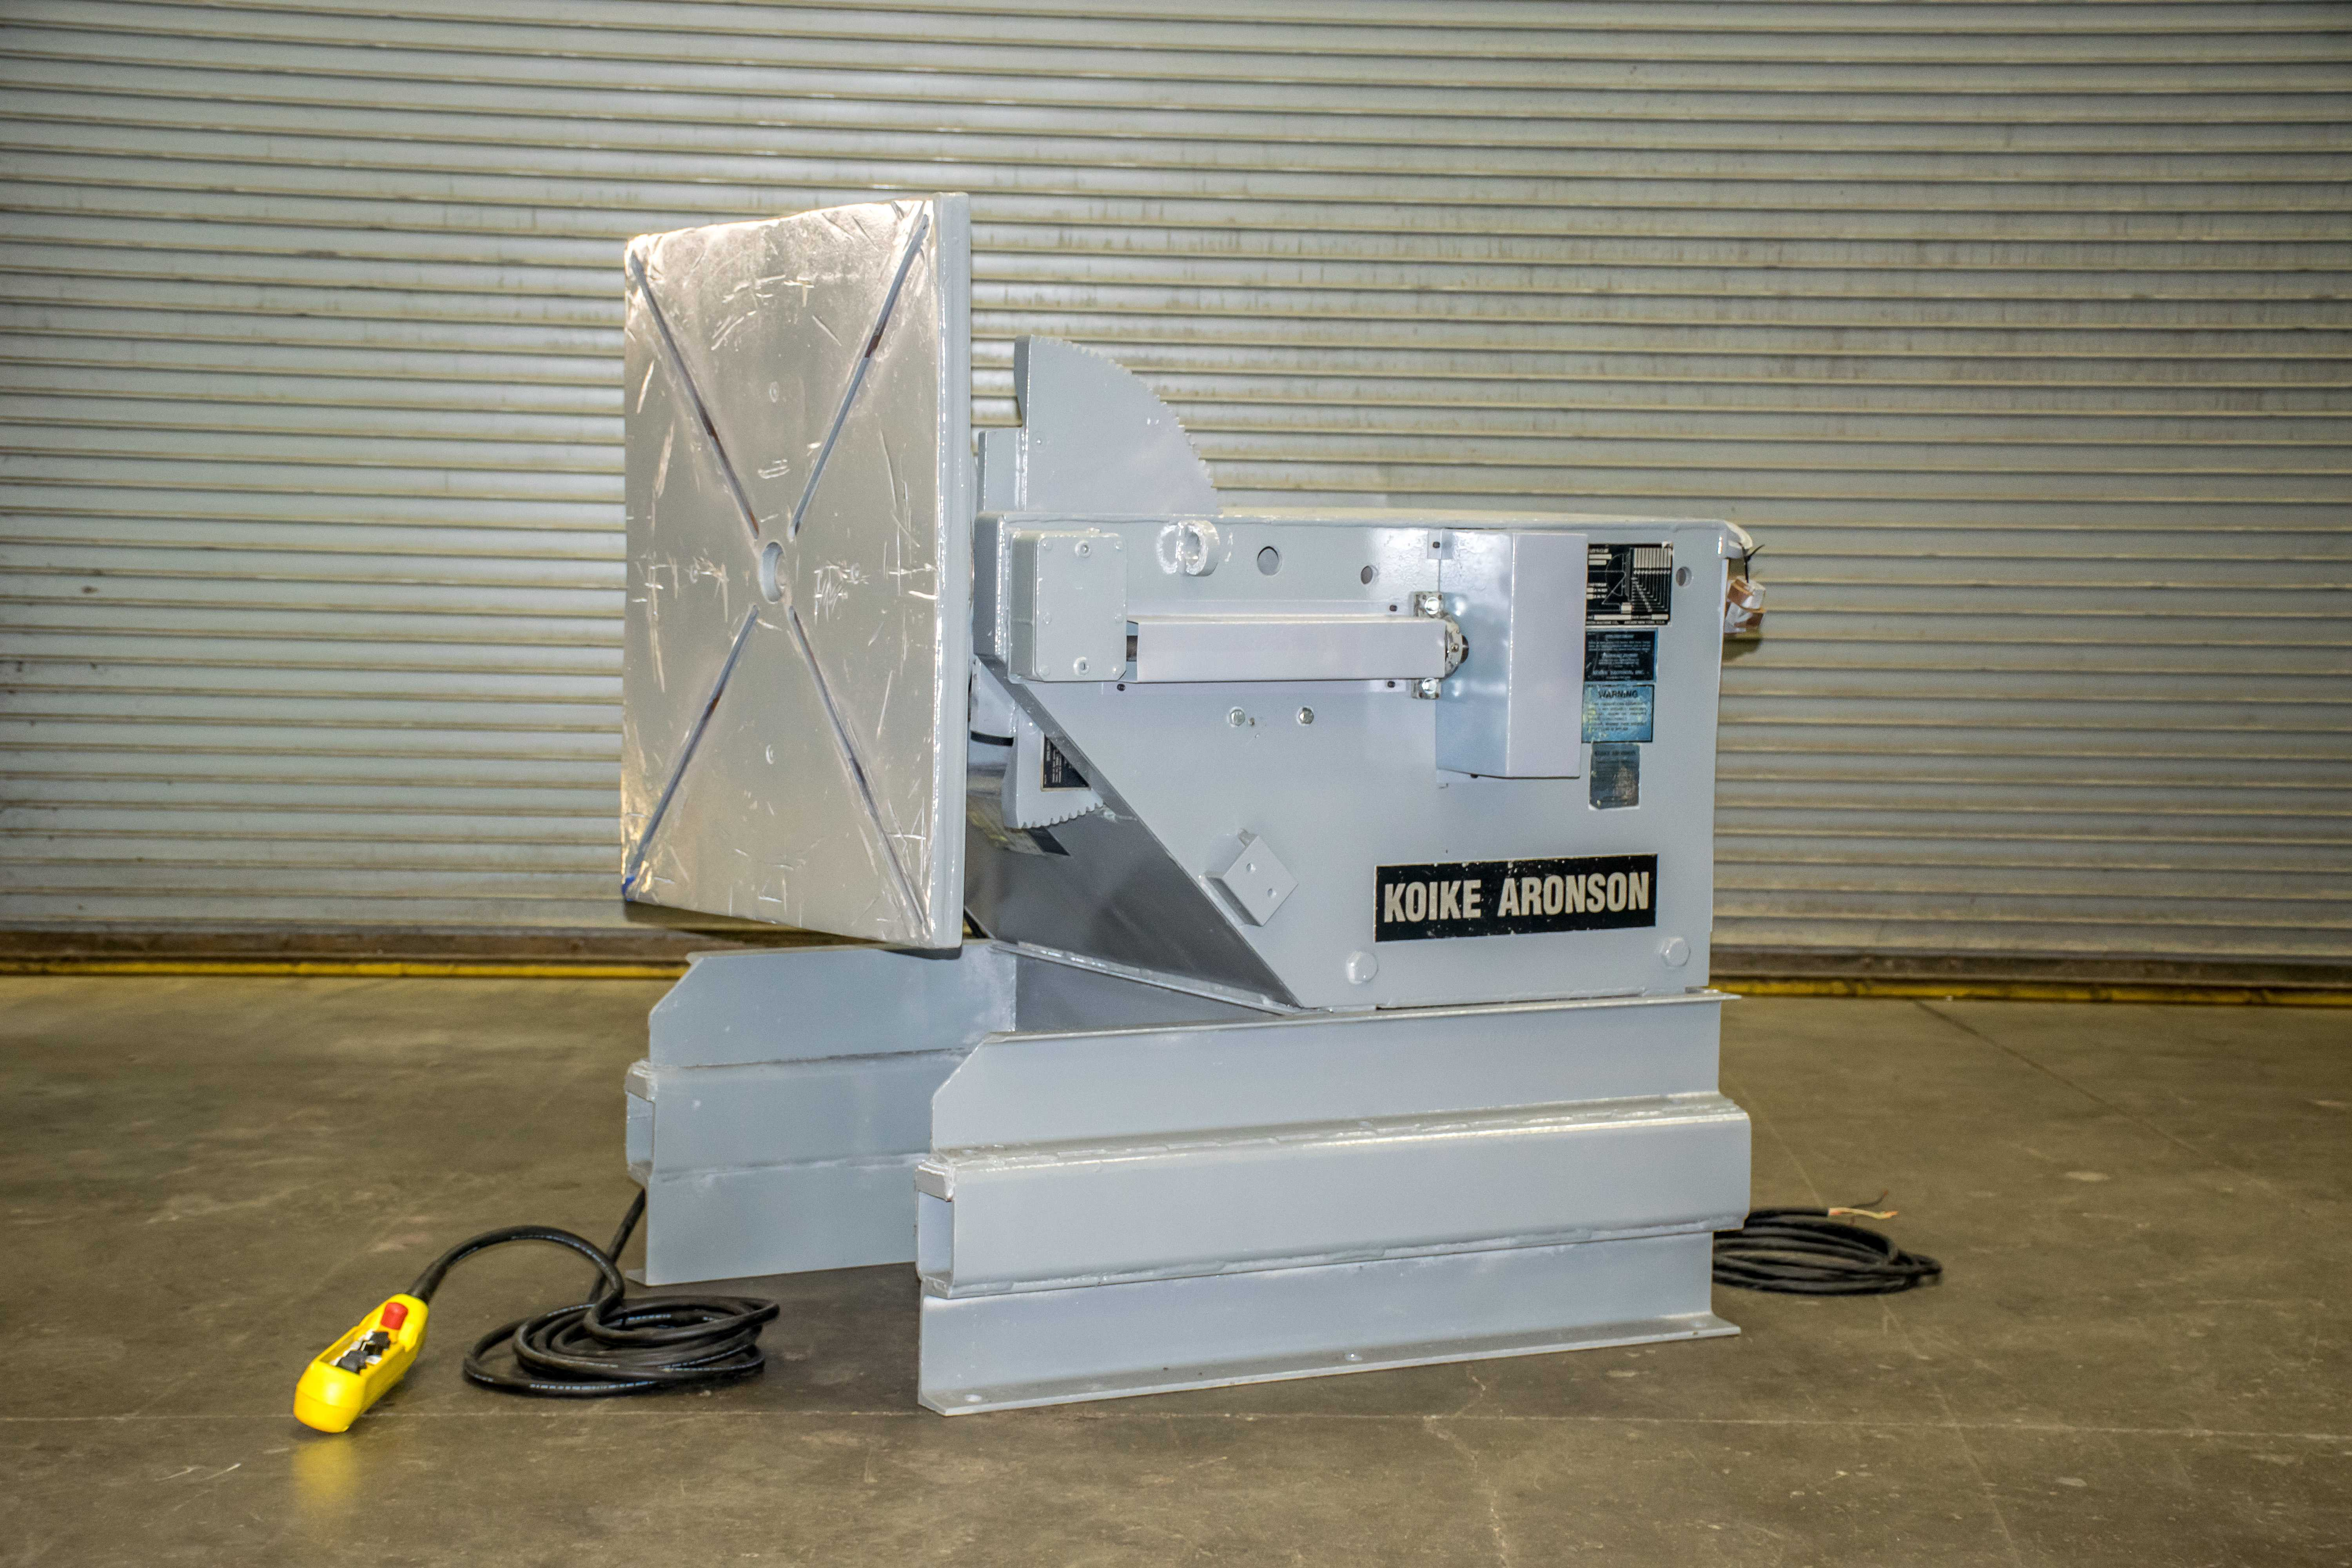 This Aronson Model HD30 Positioner has been completely rebuilt and is ready to ship!